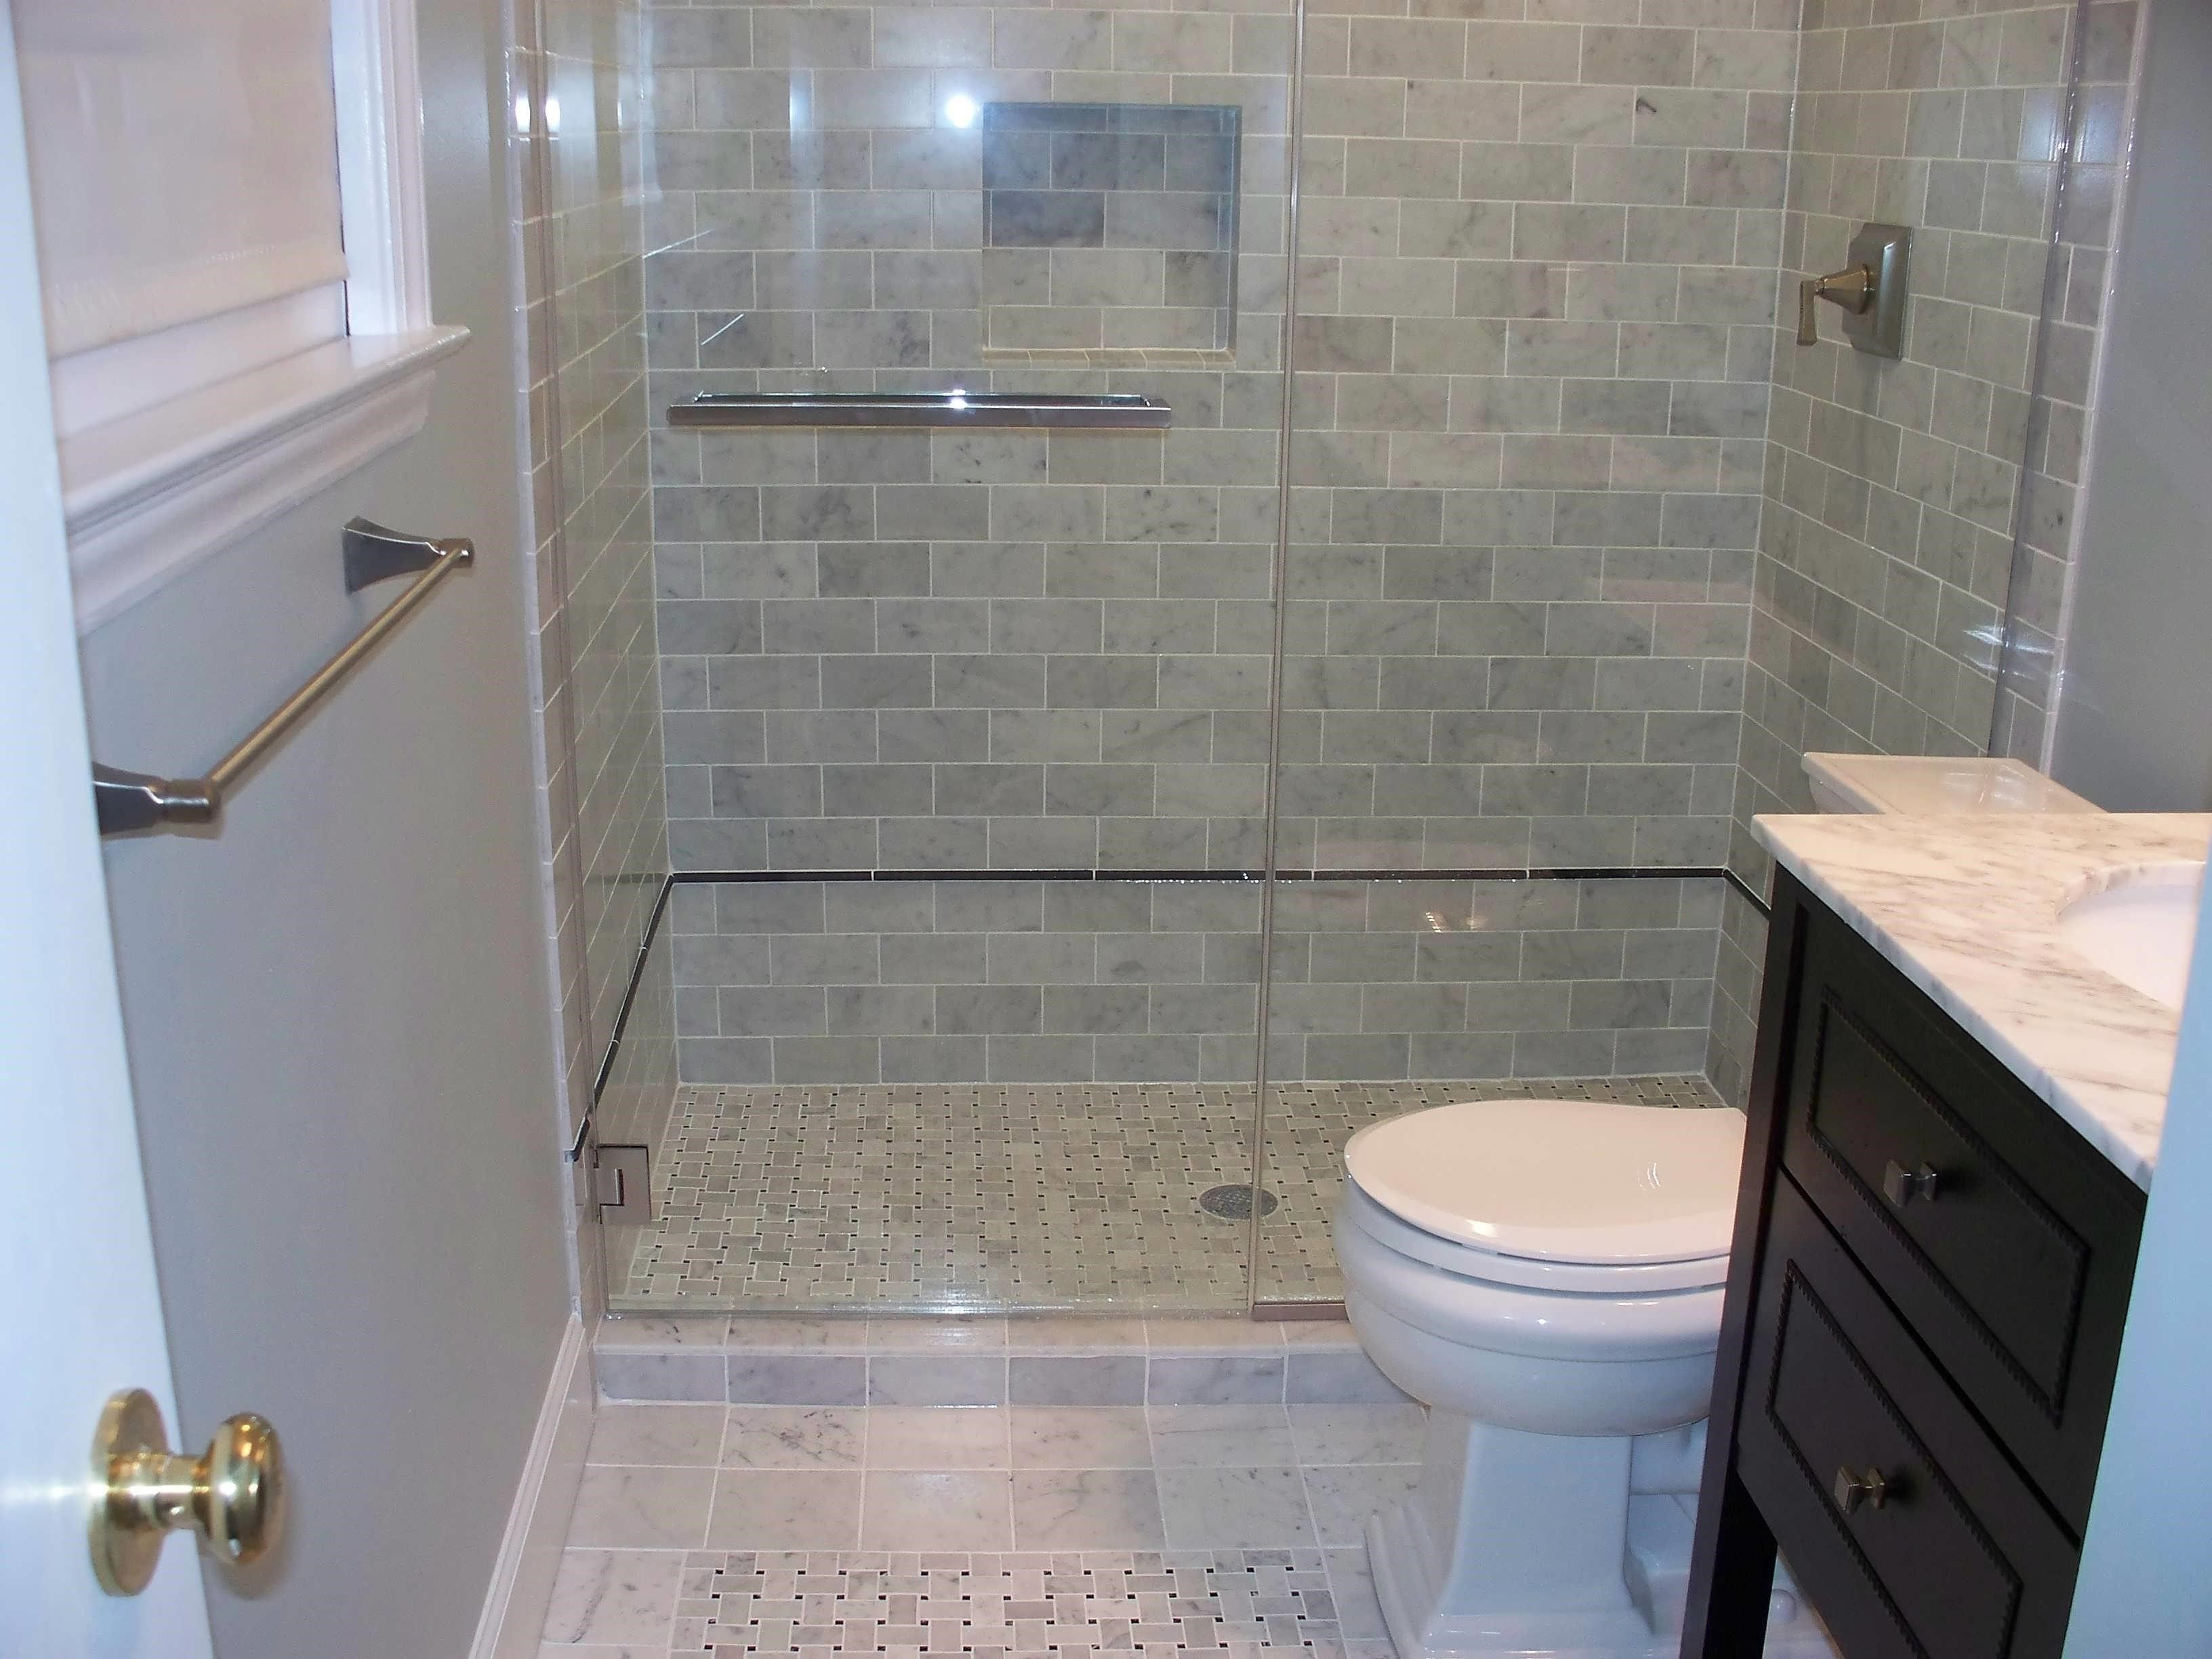 Fantastic Small Bathroom Ideas With Shower Only In House Remodel Ideas With Small Bathroo